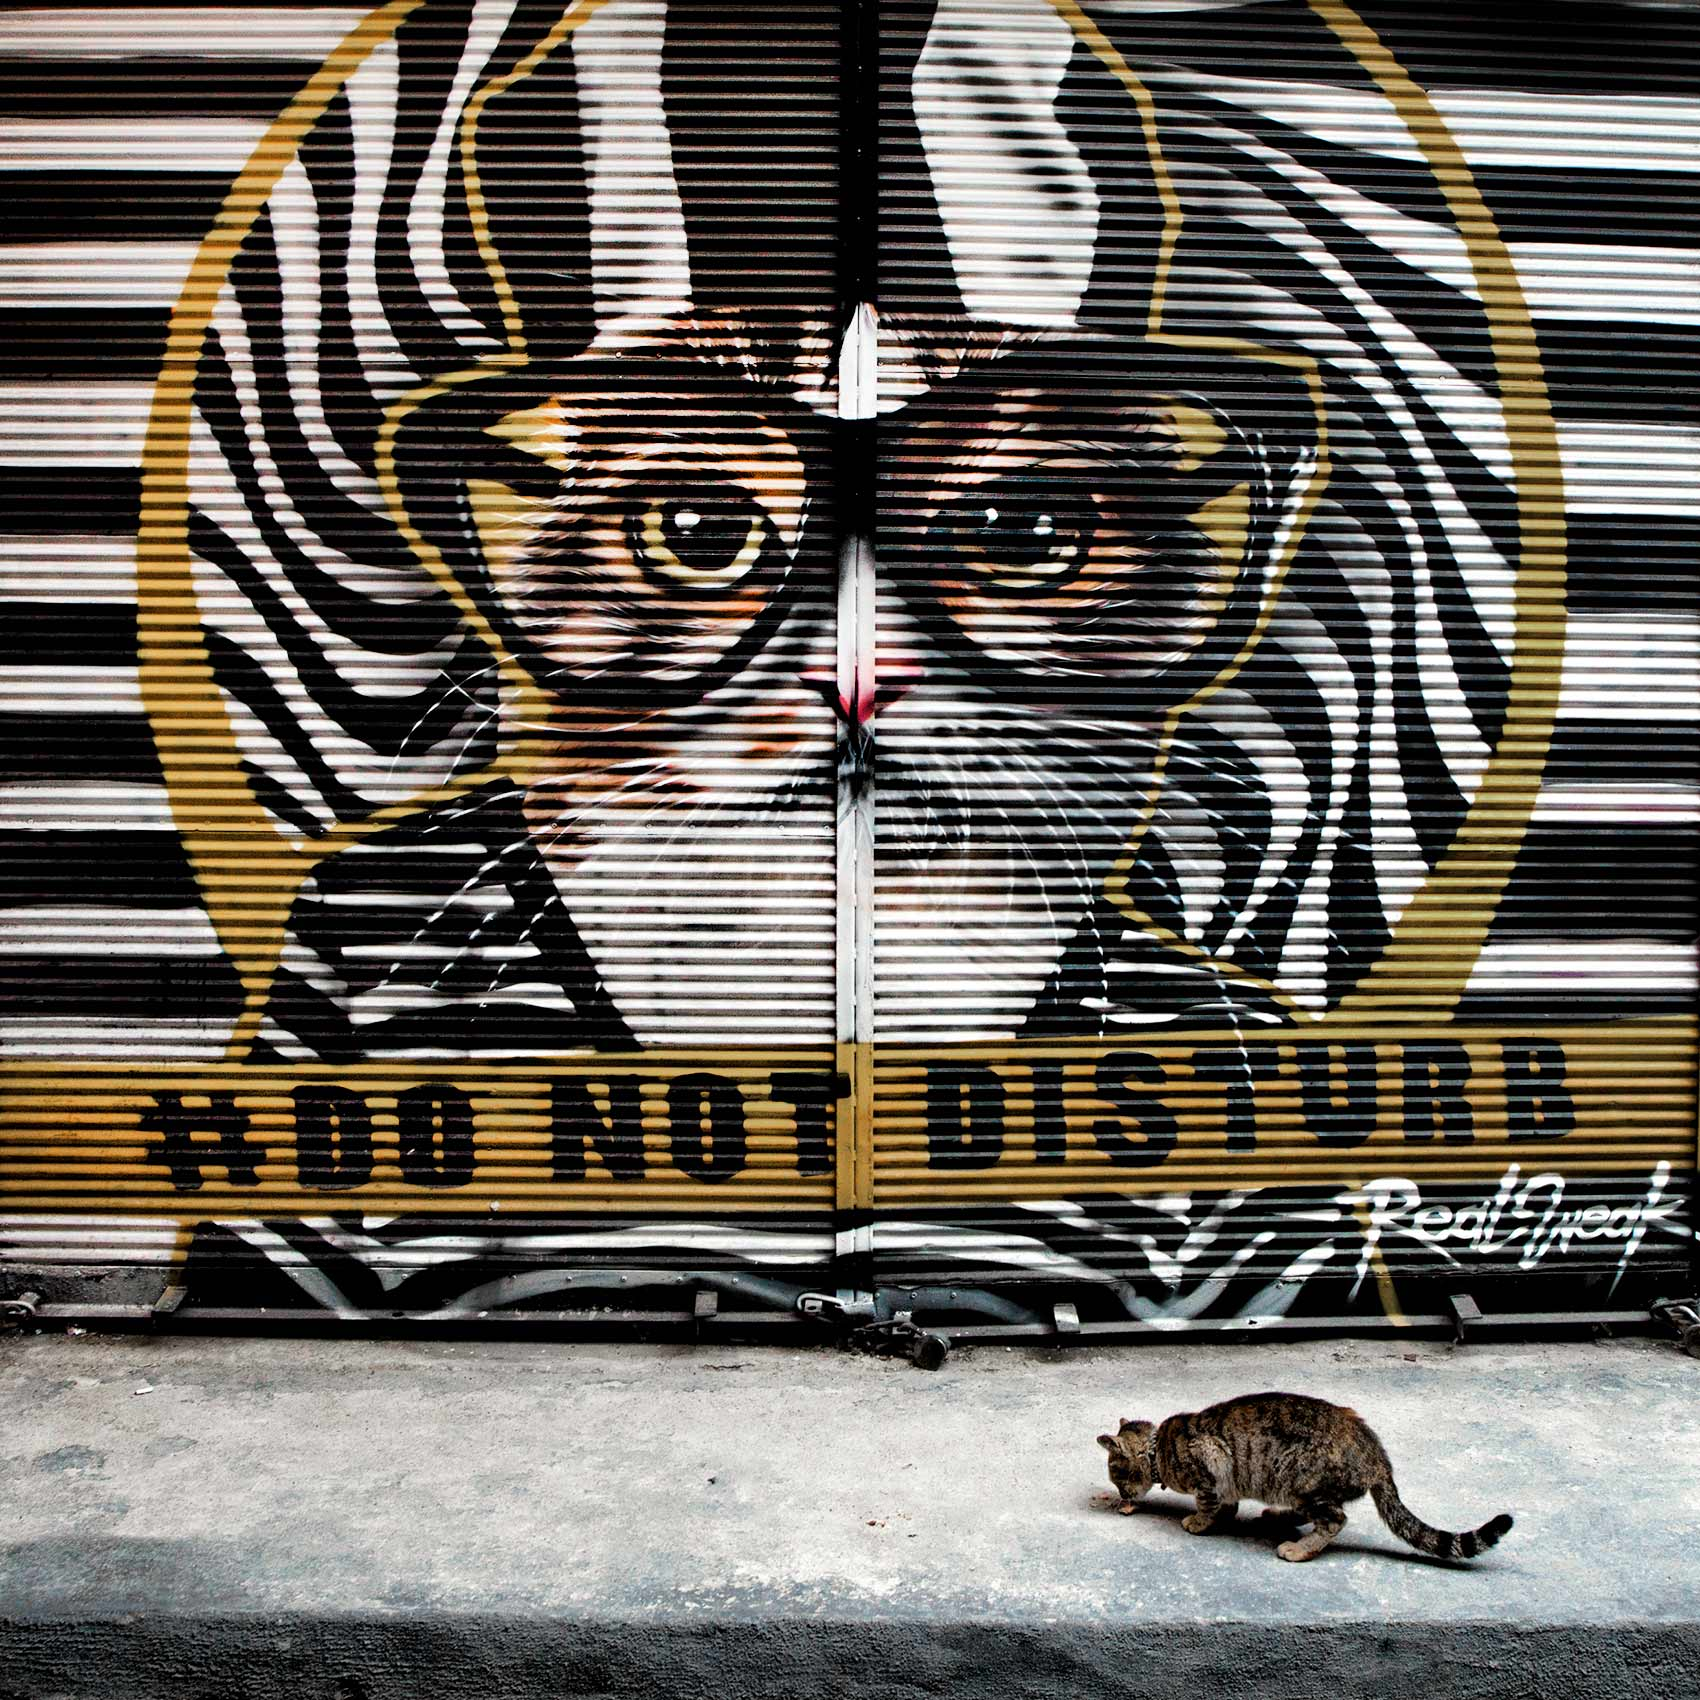 a-kitten-eats-some-food-on-a-sidewalk-on-the-streets-of-istanbul-in-front-of-a-graffiti-portrait-of-a-cat